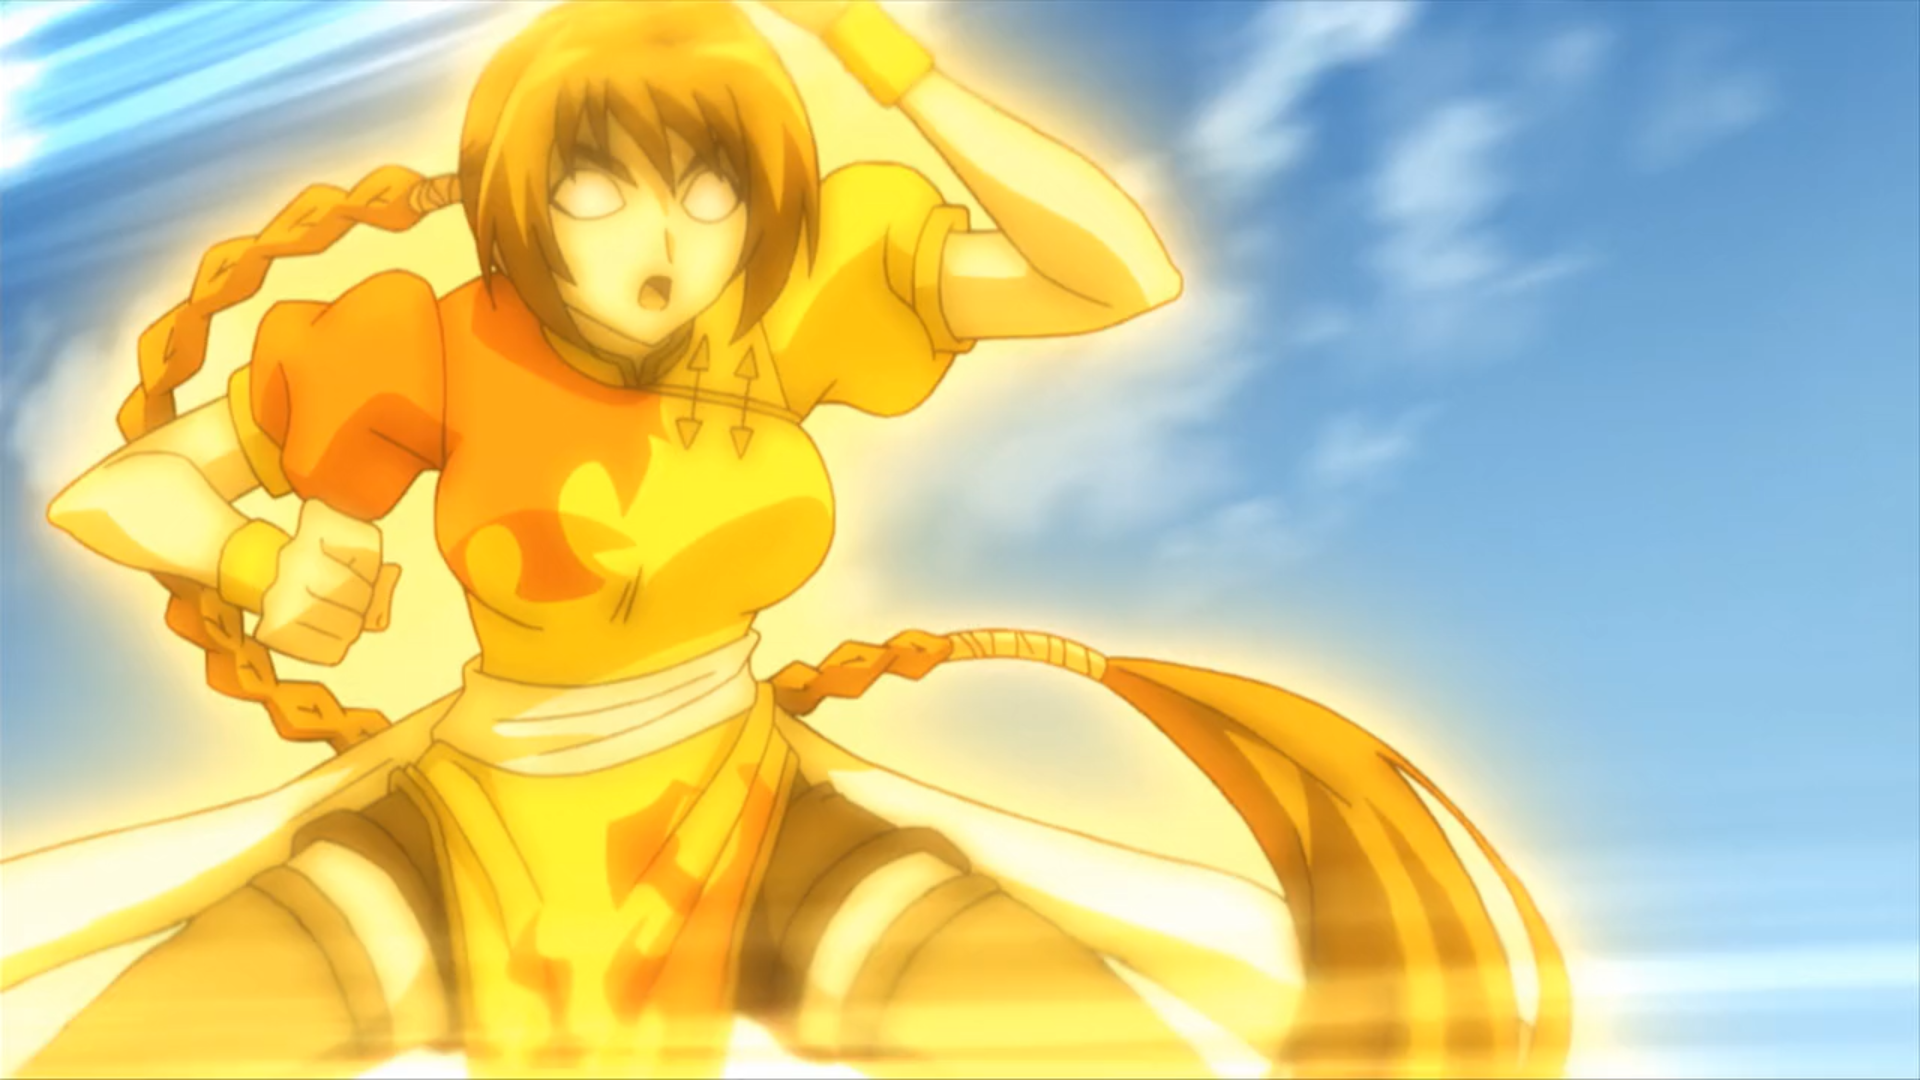 Datei:MFB Maiden.png